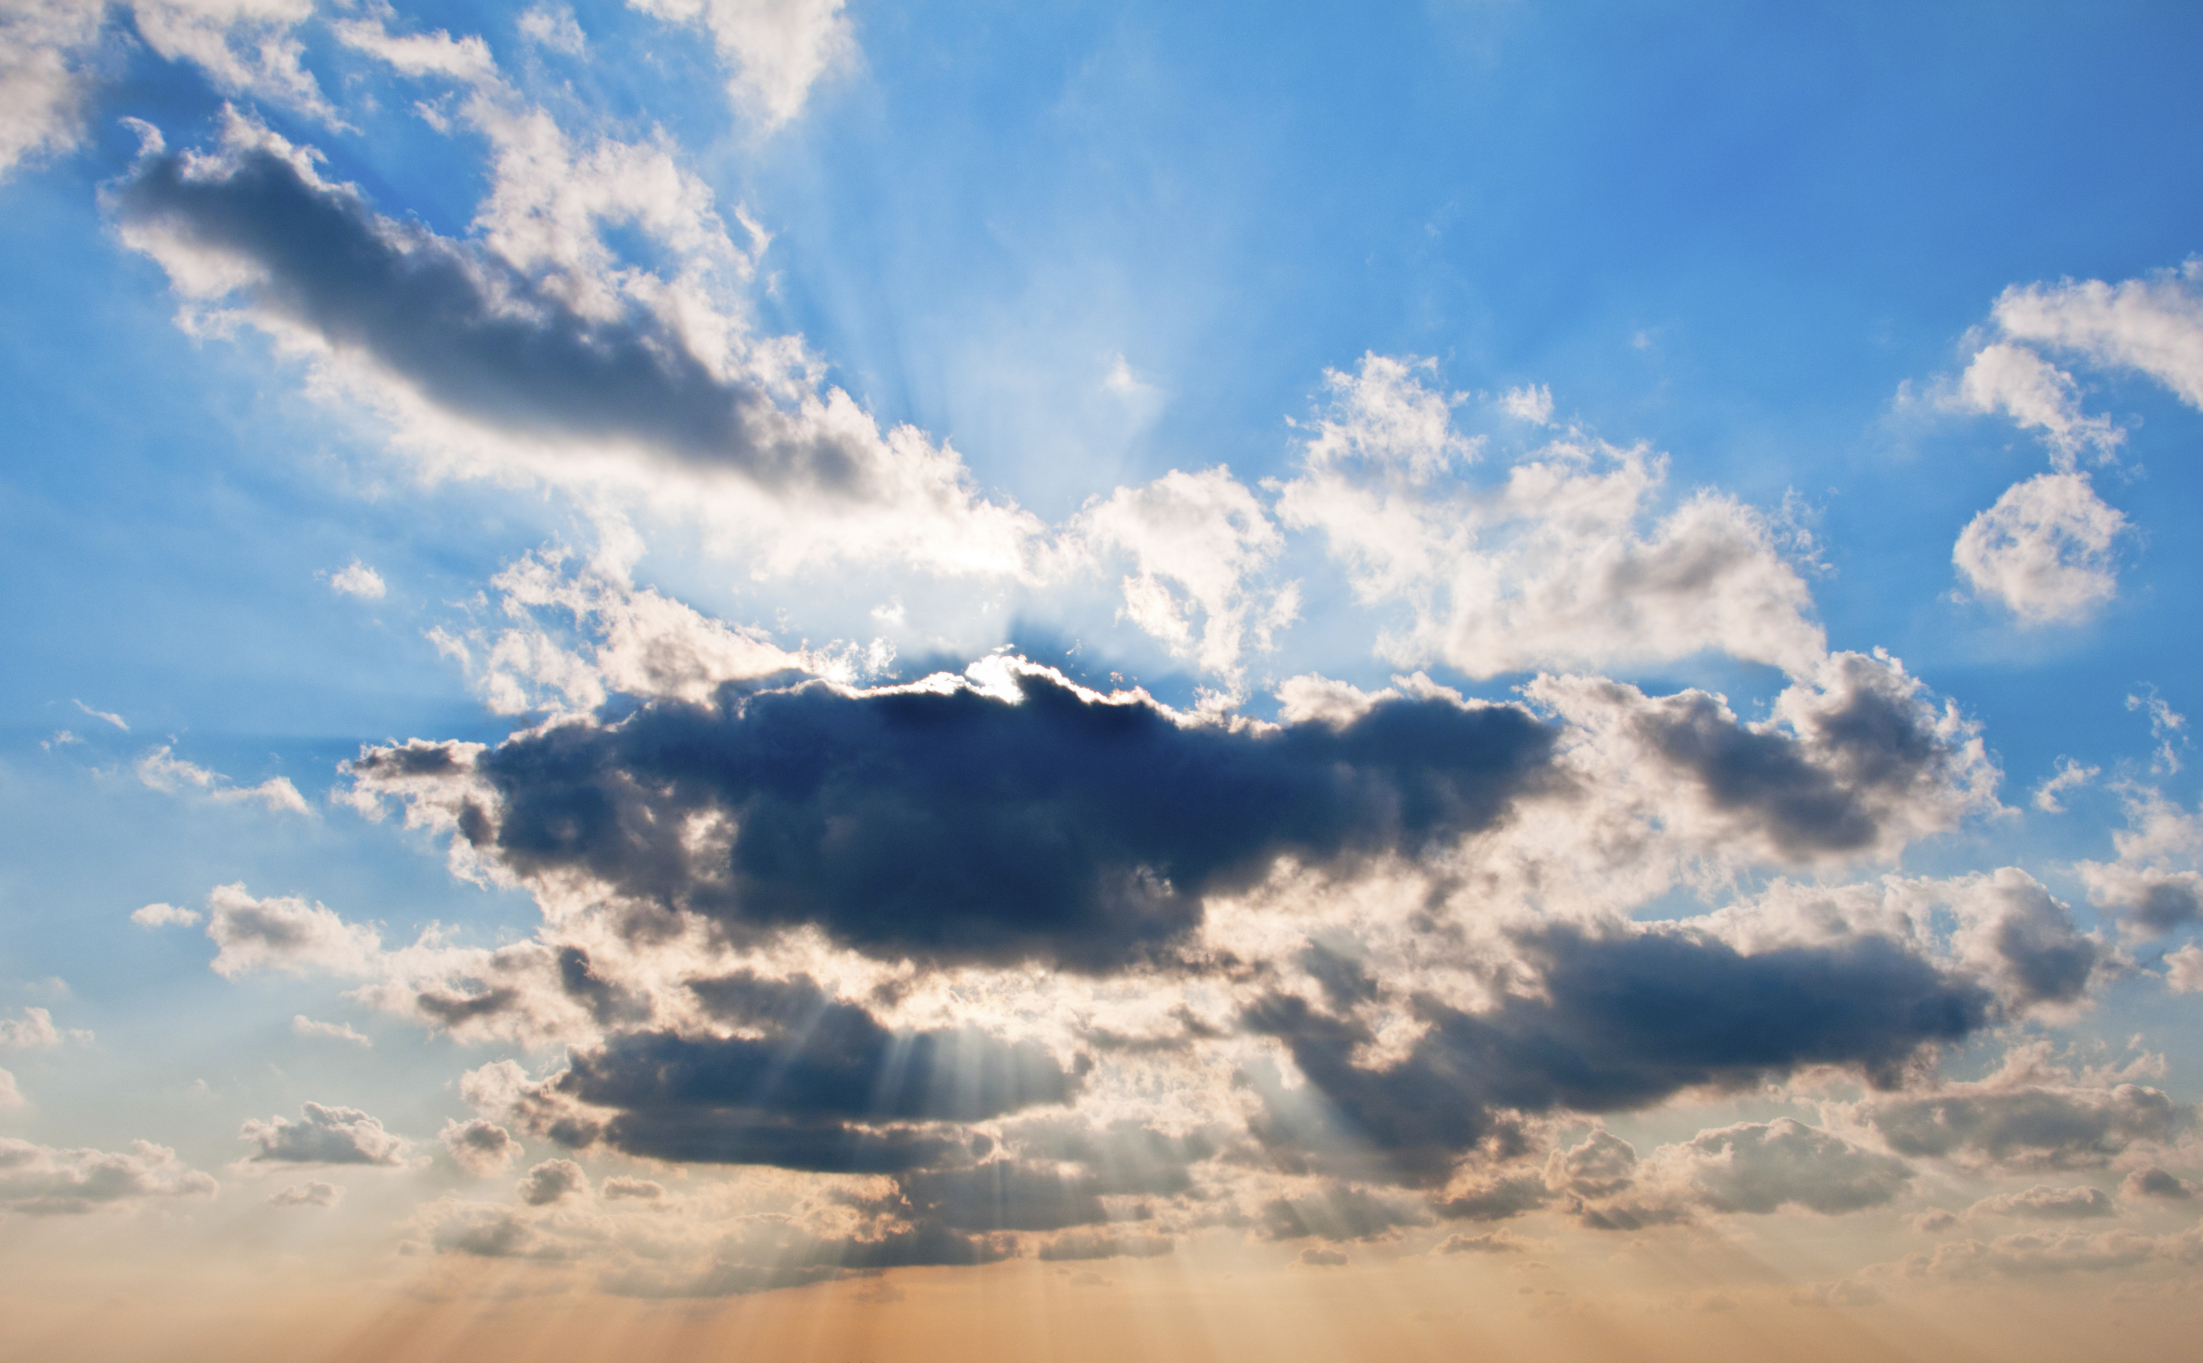 Every Cloud has a silver lining - IBM - United States